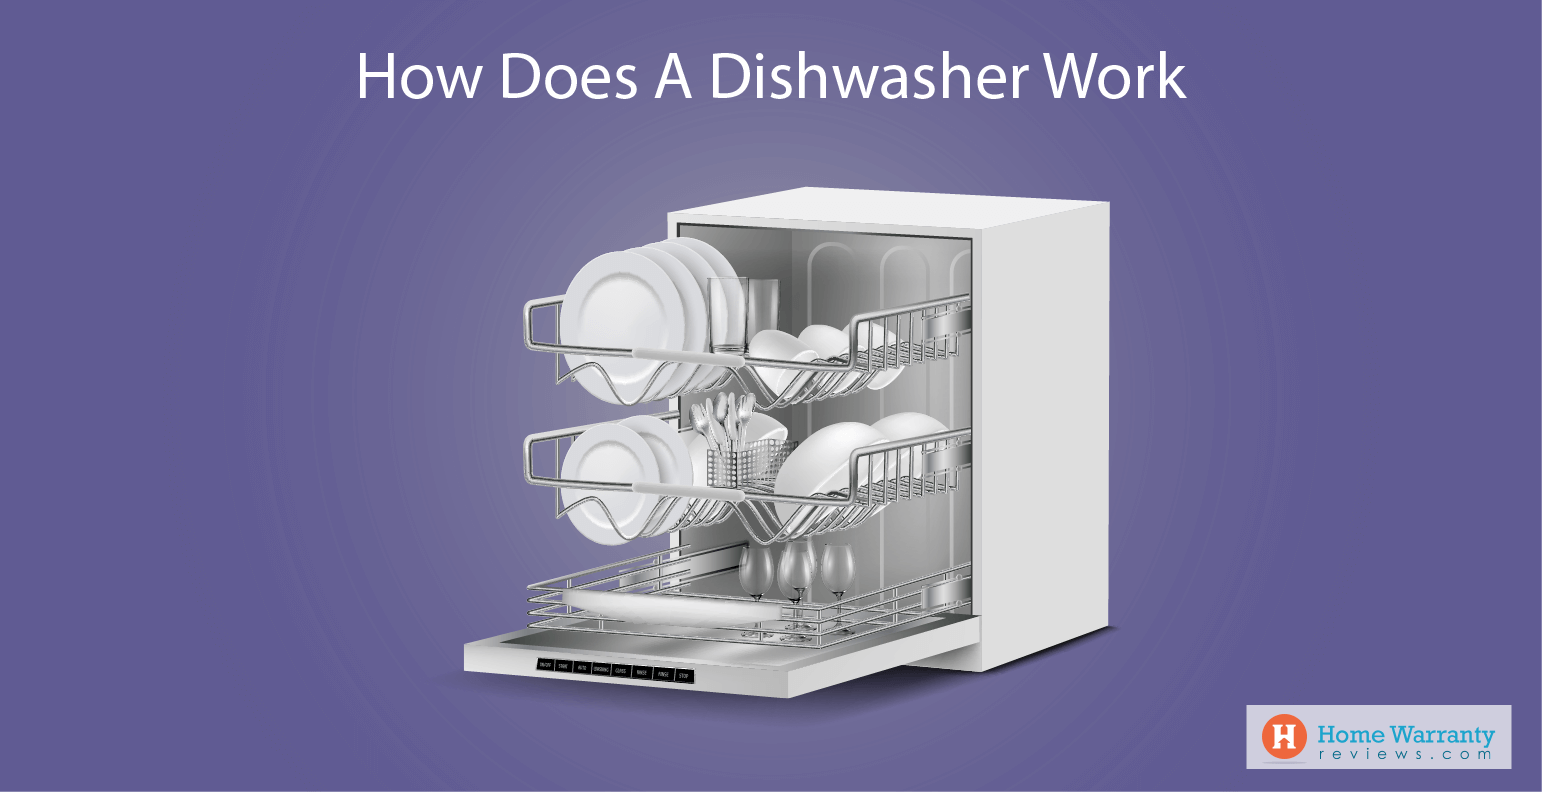 Mechanisms 101: How Does A Dishwasher Work?